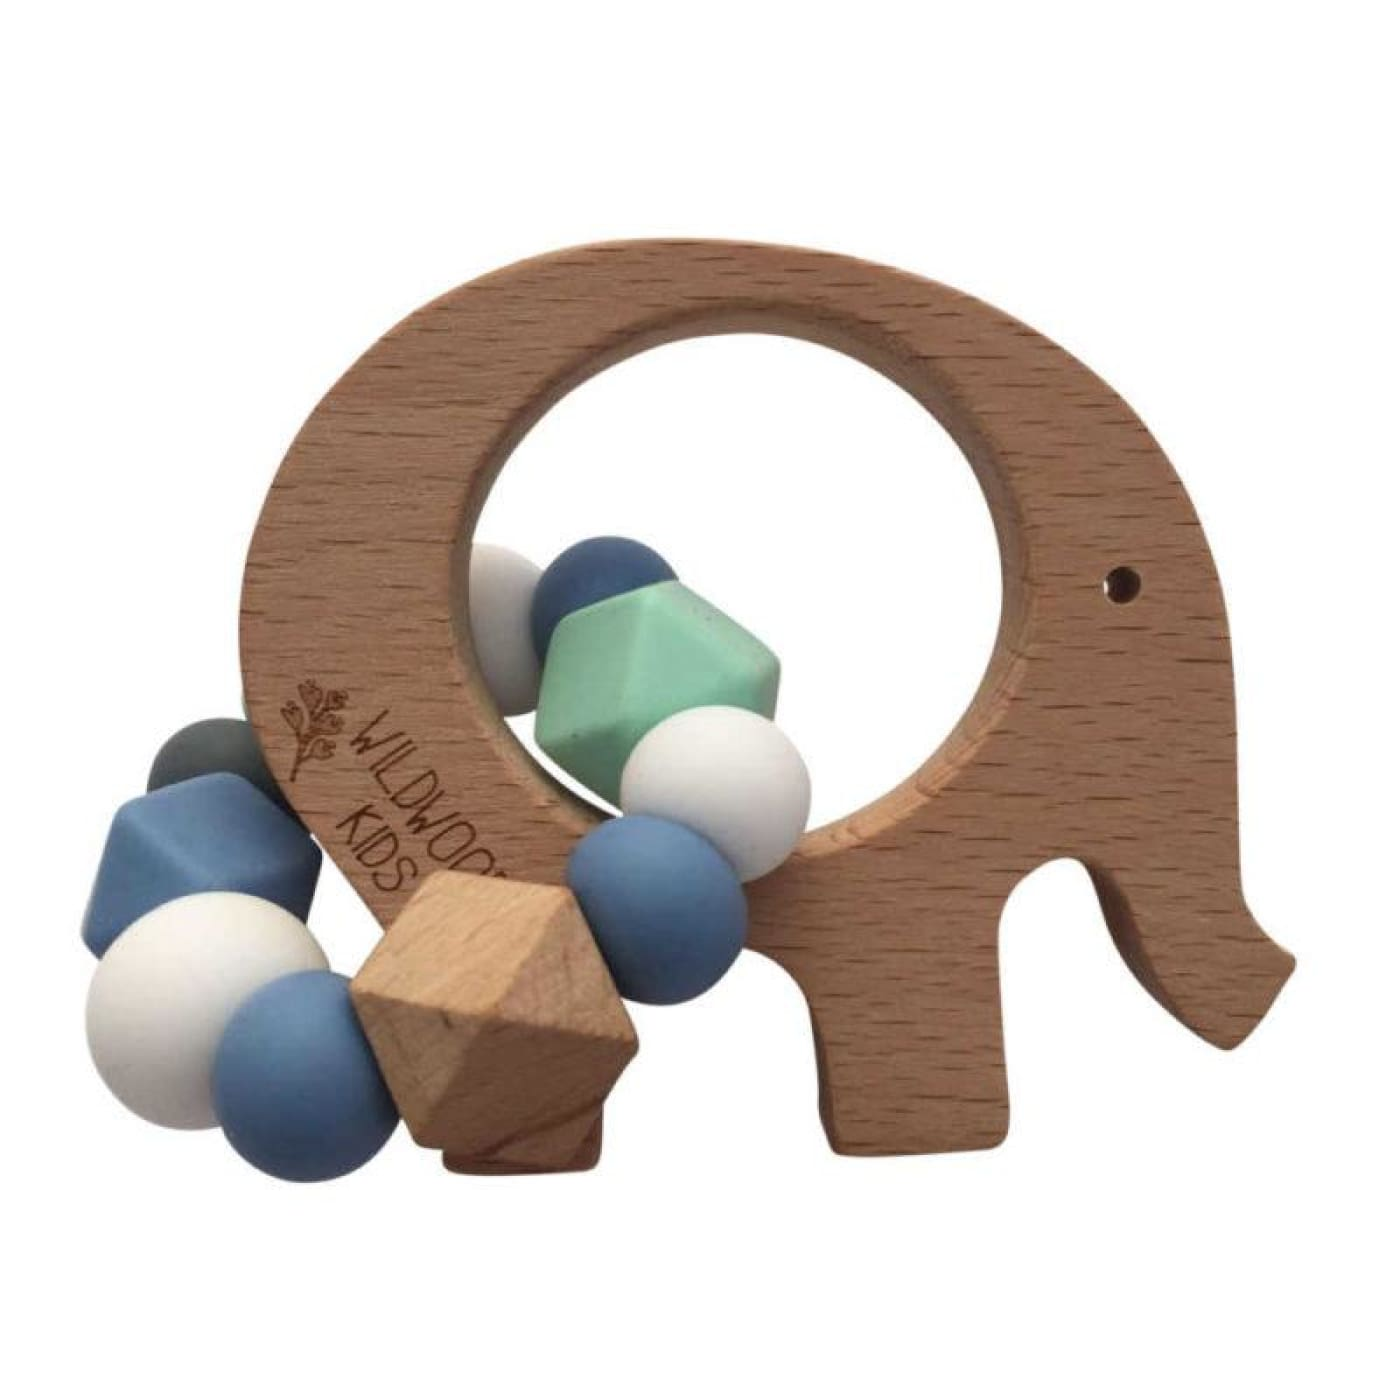 Wildwood Kids Teether - Elephant Blue Mix - NURSING & FEEDING - TEETHERS/TEETHING JEWELLERY